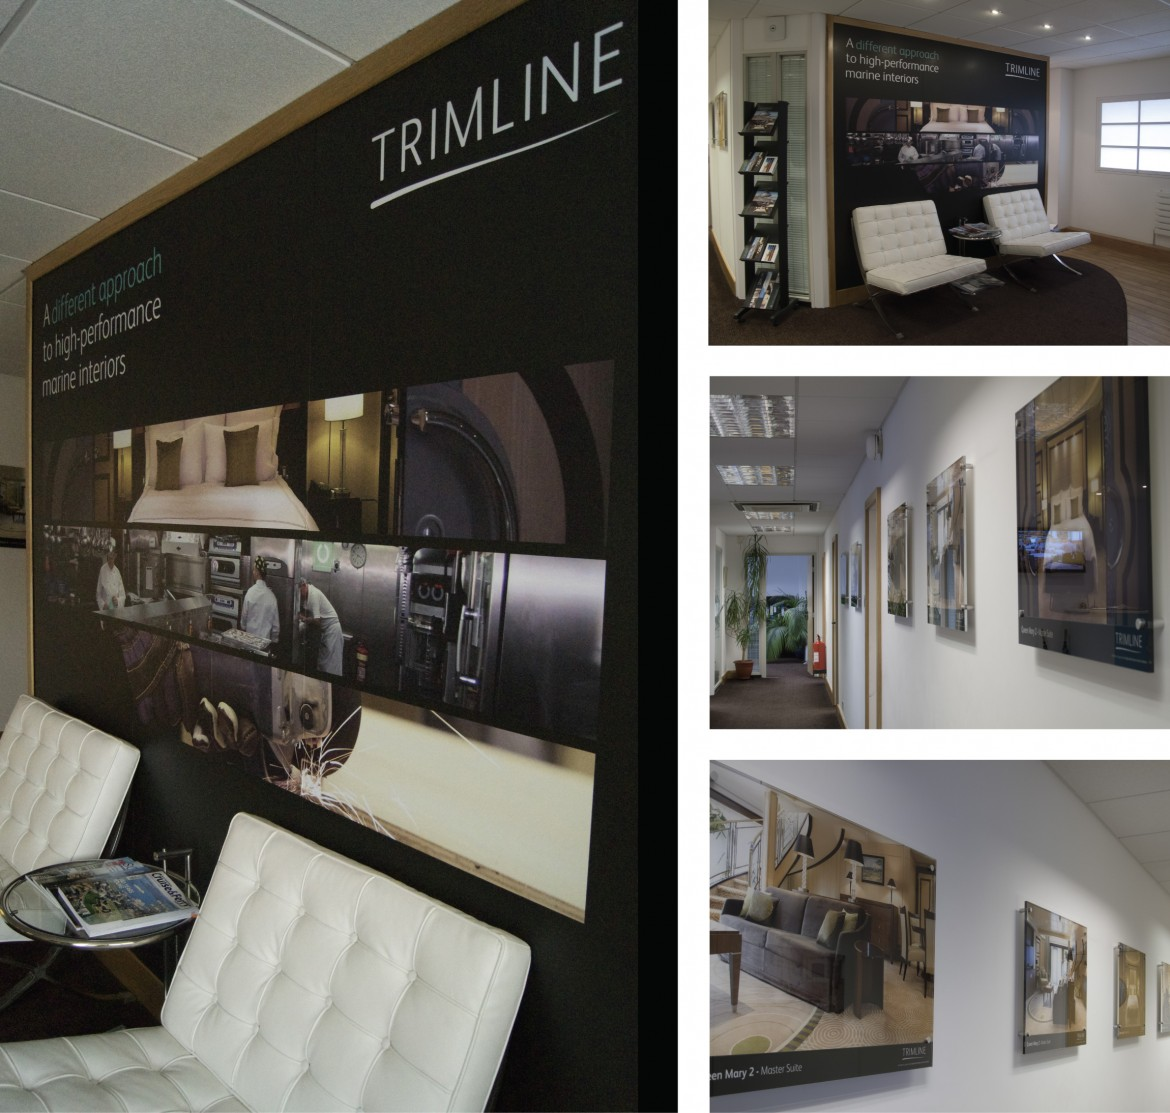 Digitally printed Decorbrand fabric backed wall paper and acrylic wall art for Trimline Ltd